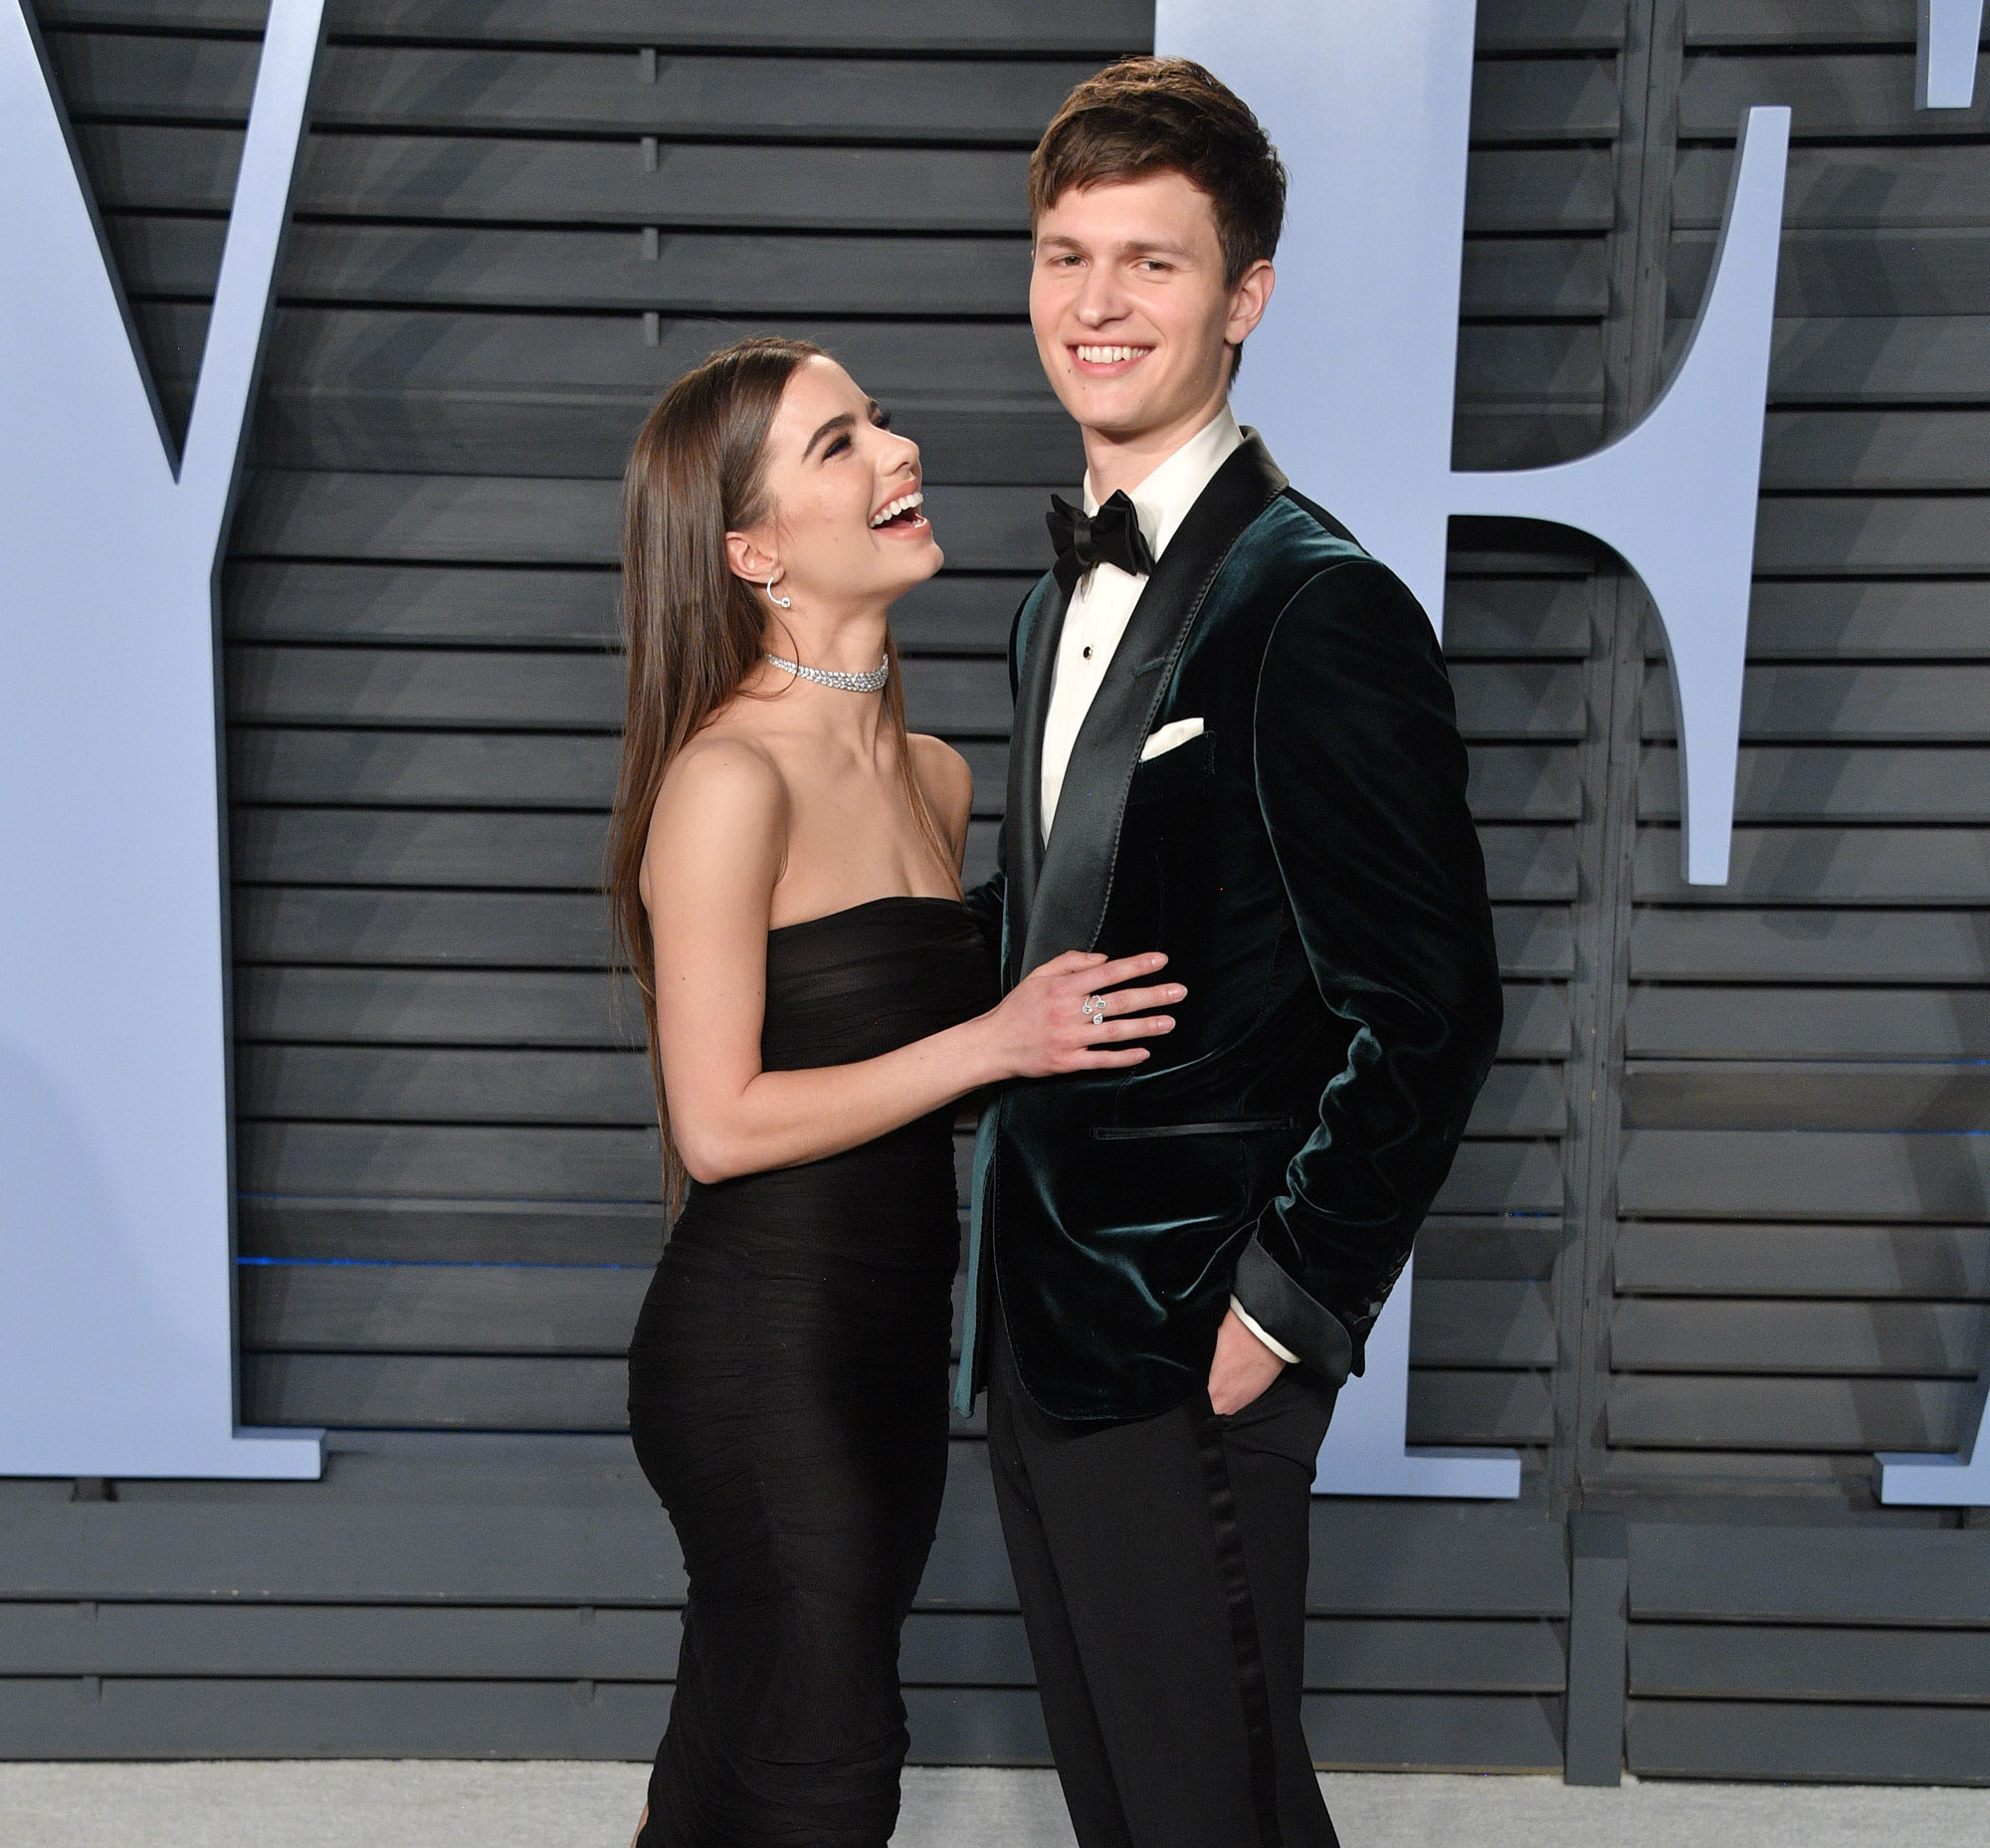 Asnel Elgort and violetta Komyshan at Oscars after Party